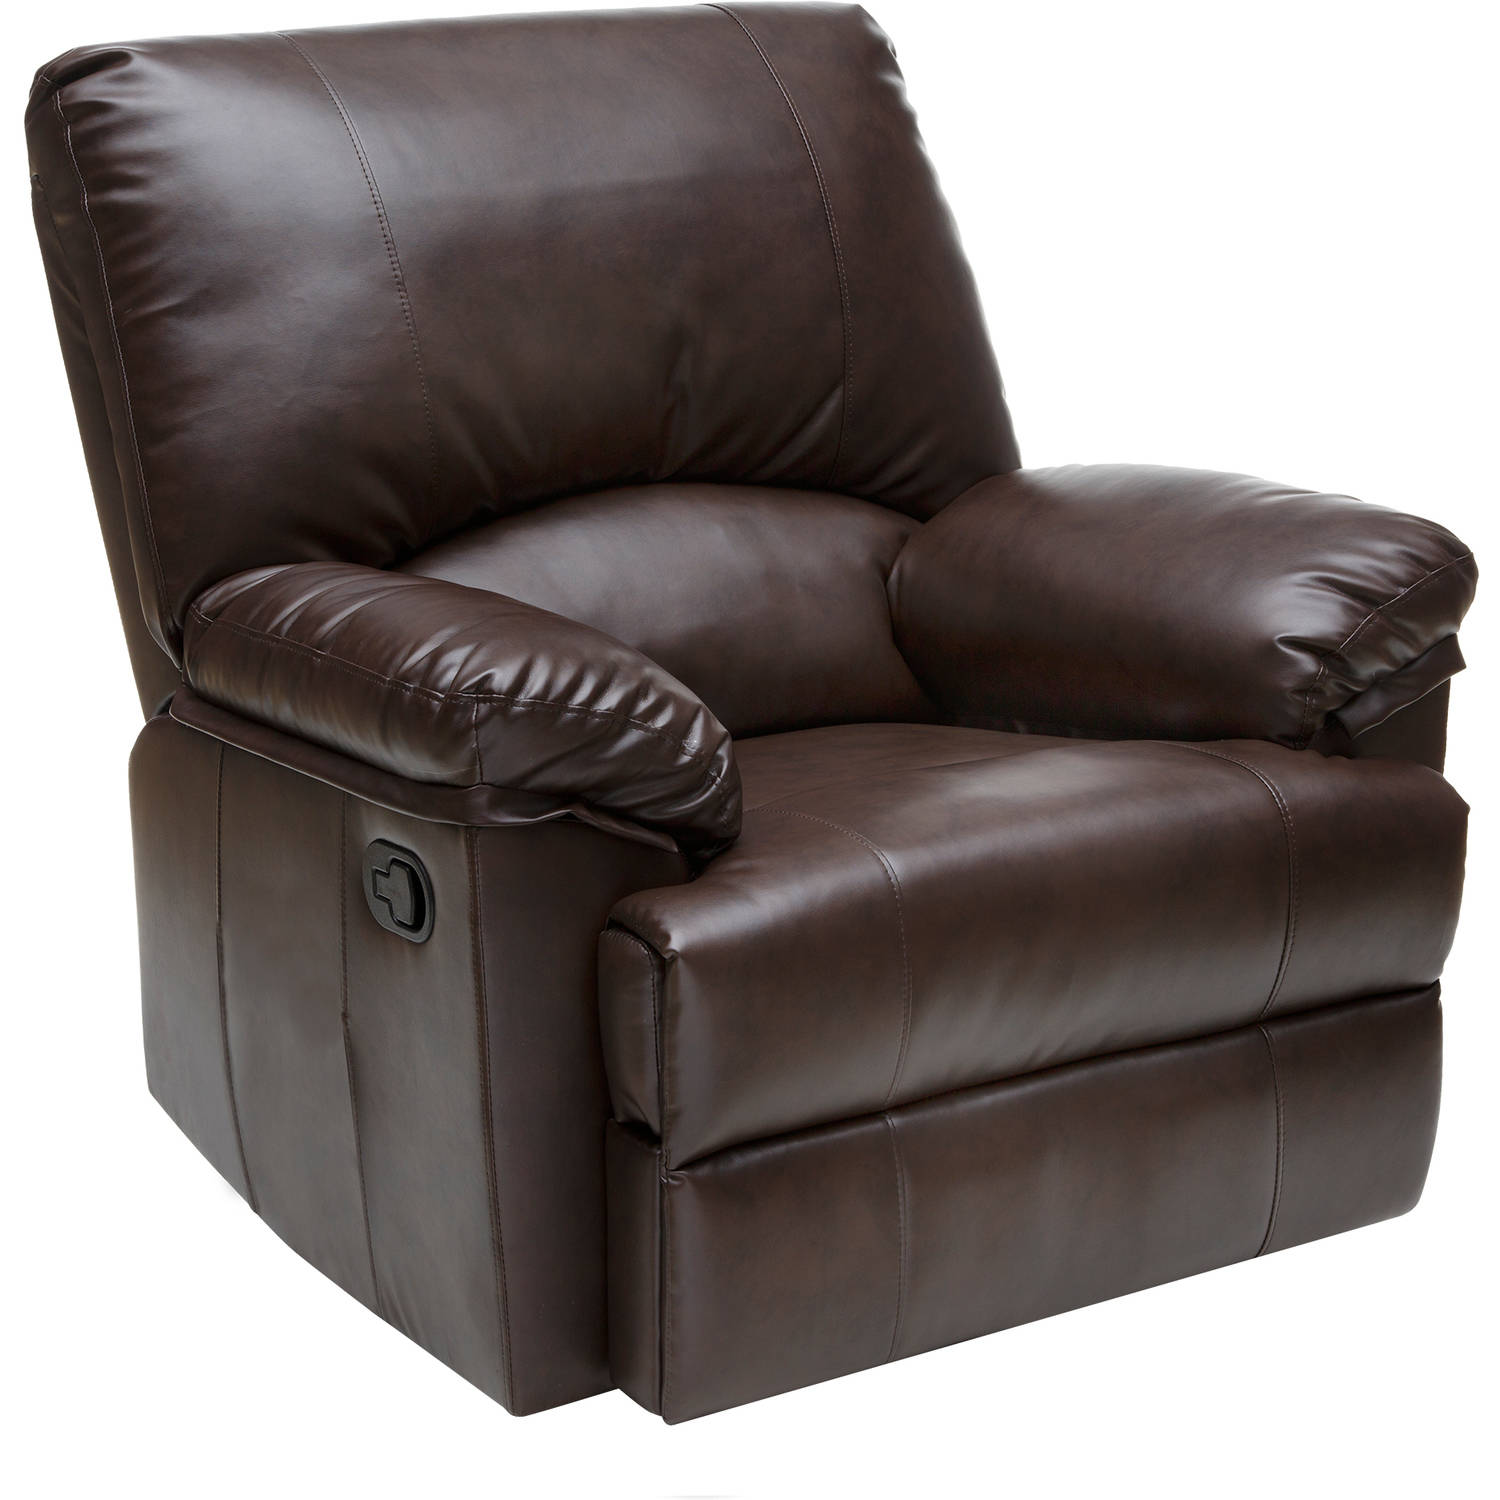 Relaxzen 23-7000WM Rocker Recliner, Brown Marbled Leather